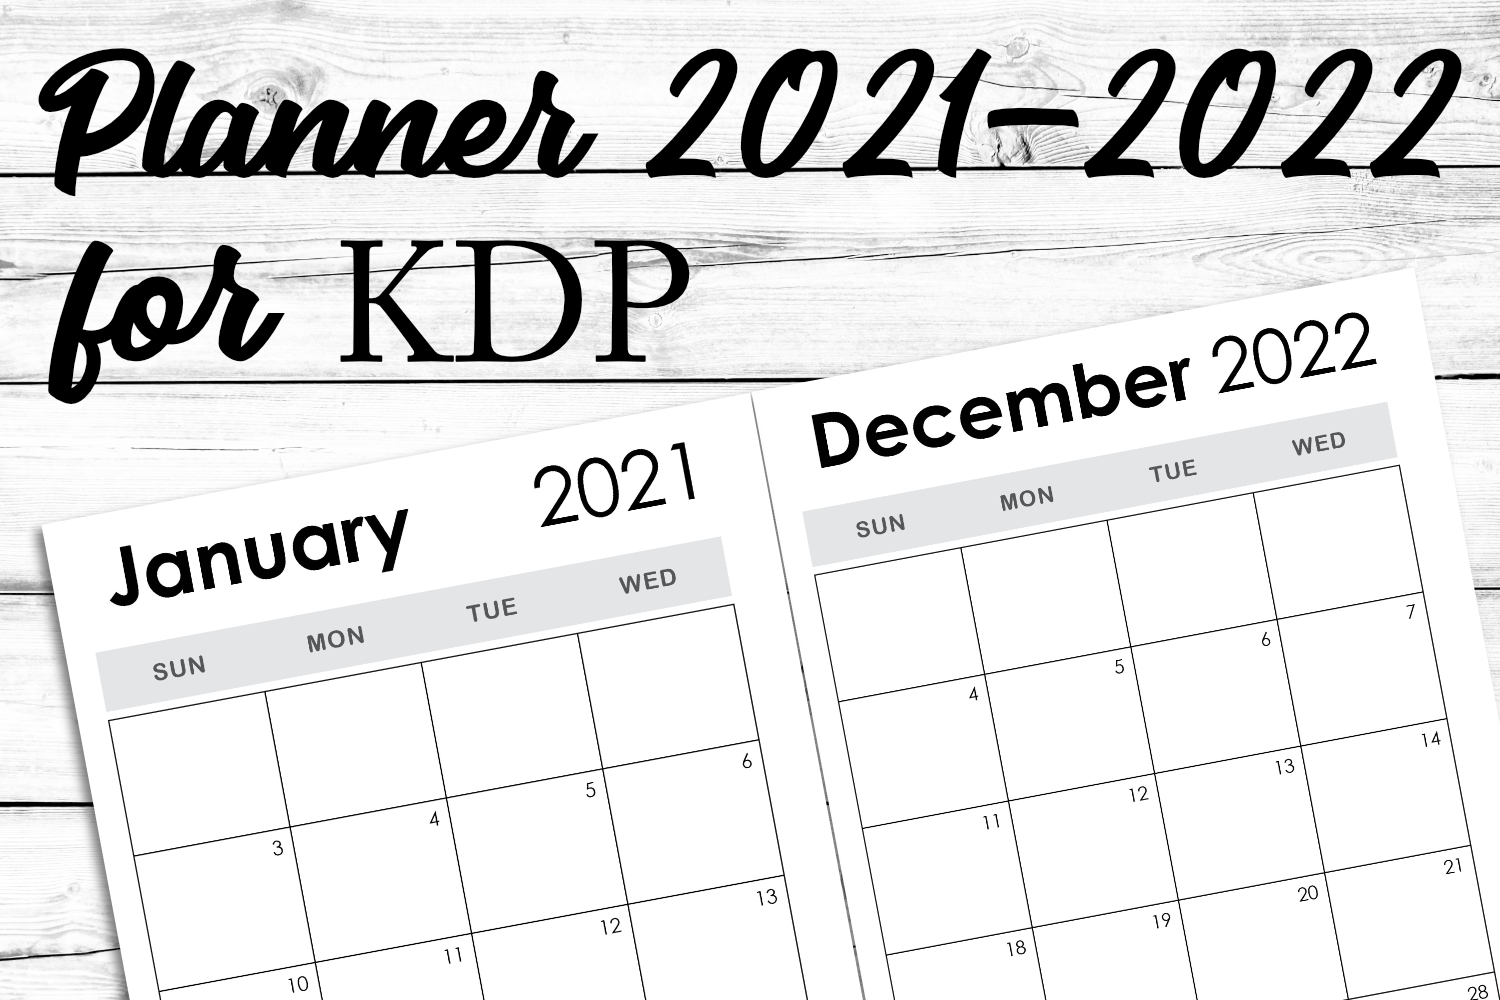 2021-2022 Weekly Monthly Kdp Template throughout 2021-2022 Monthly Planner: Sunflowers